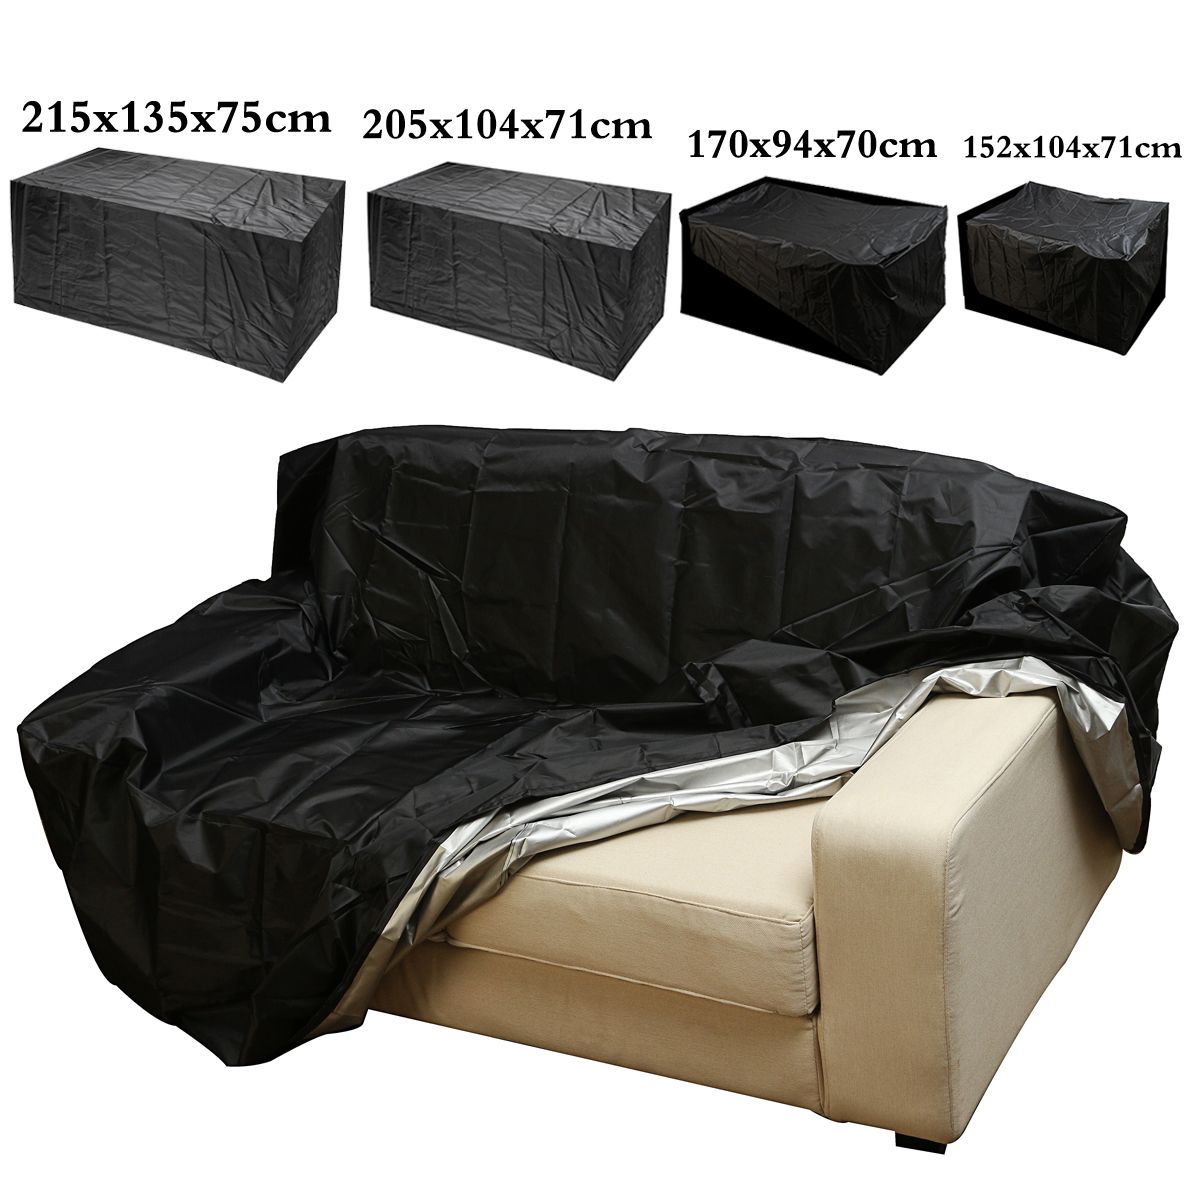 4 Size Outdoor Waterproof Dustproof Furniture Protector Table Set Chair Sofa Cover Case... by